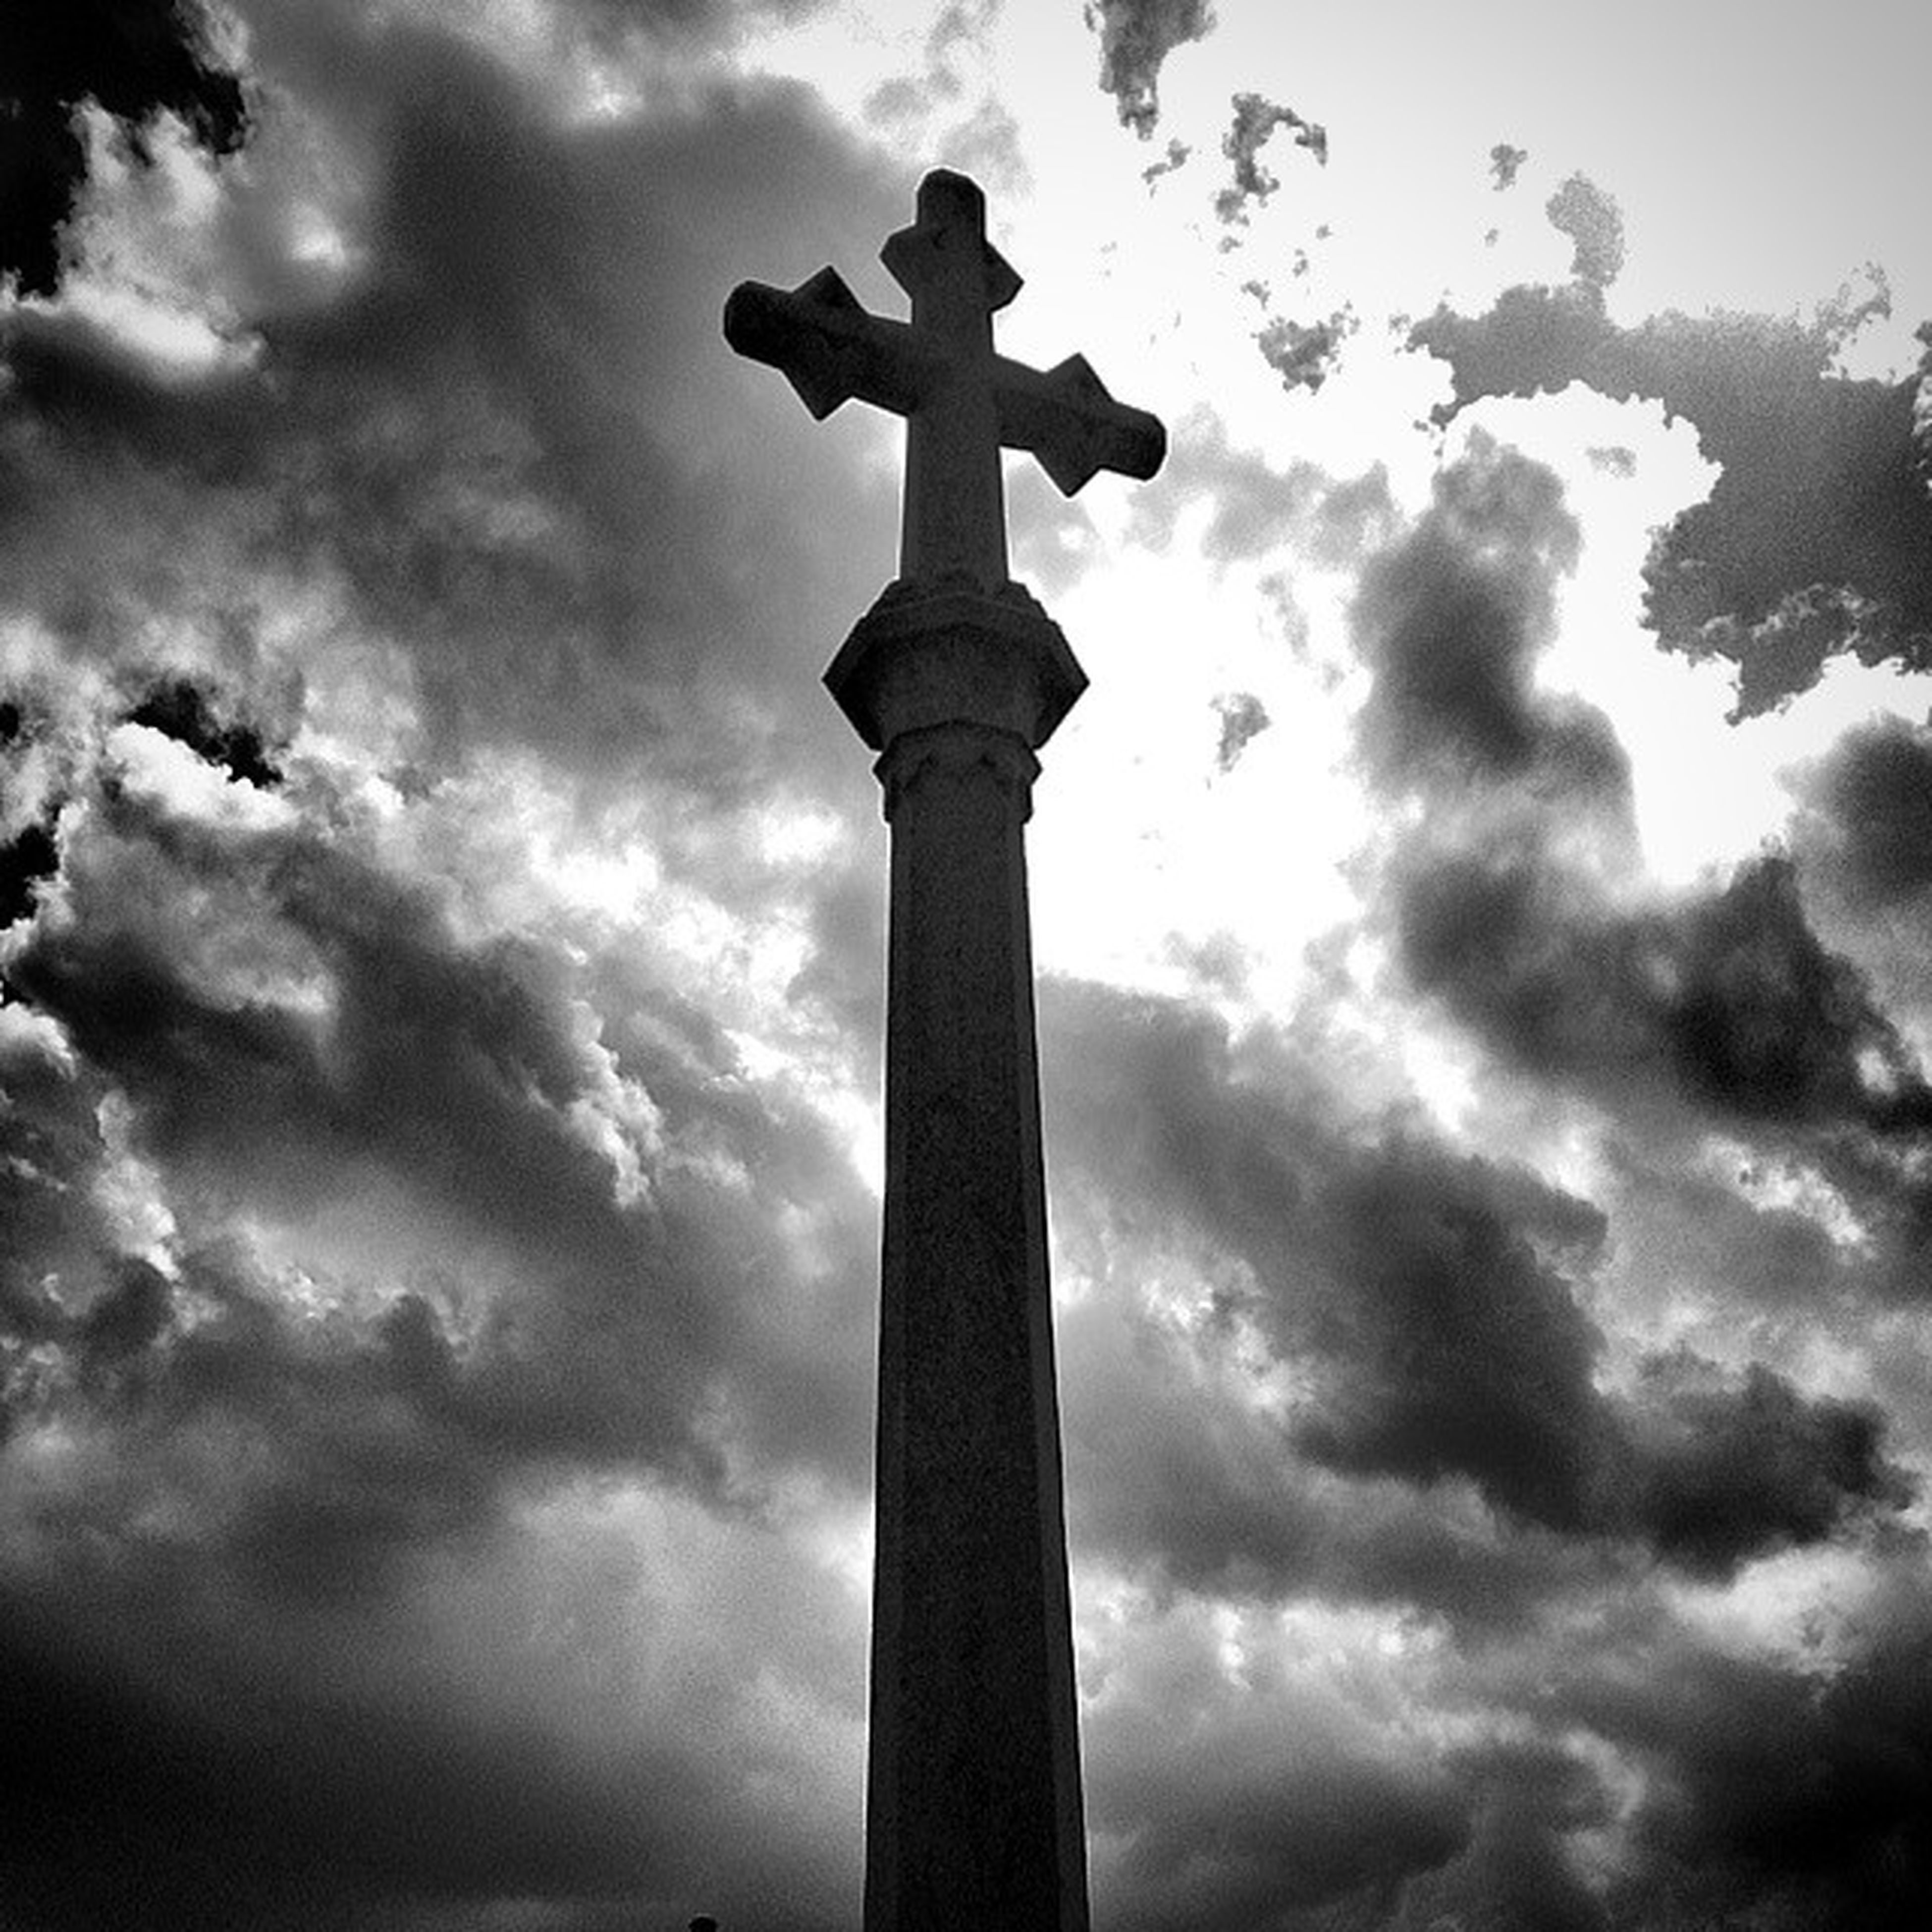 sky, low angle view, cloud - sky, cloudy, silhouette, cloud, weather, cross, dusk, overcast, no people, nature, outdoors, sculpture, tranquility, statue, religion, built structure, spirituality, architectural column